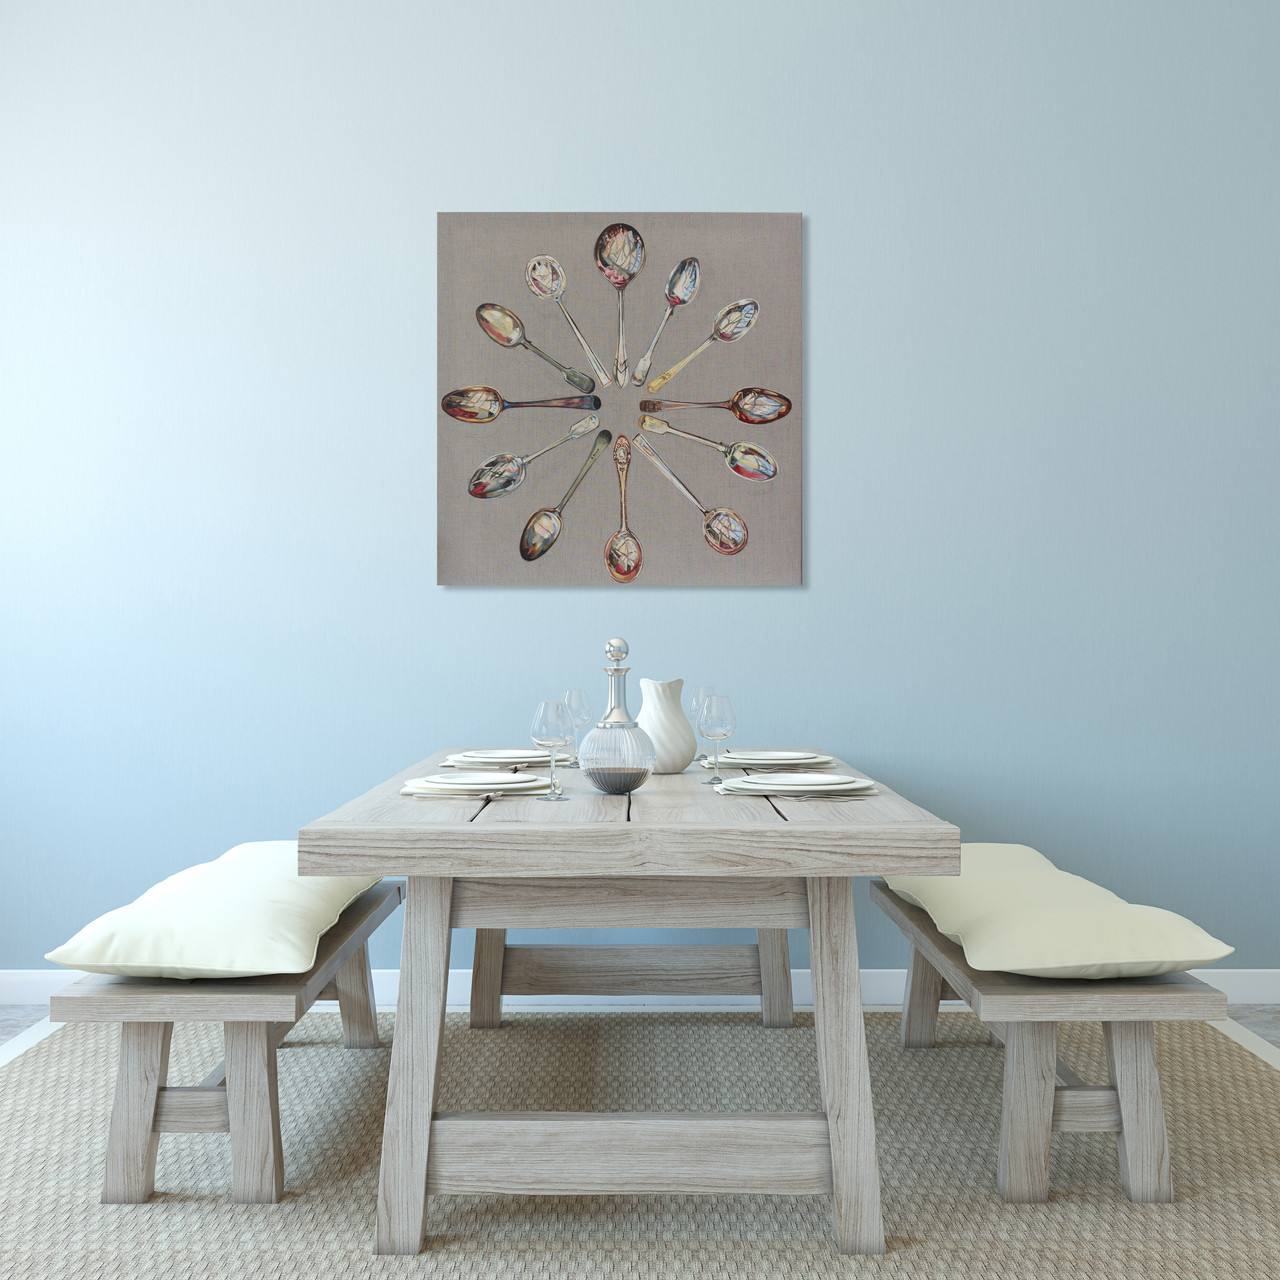 Spoons Clock in Situ context Dining room